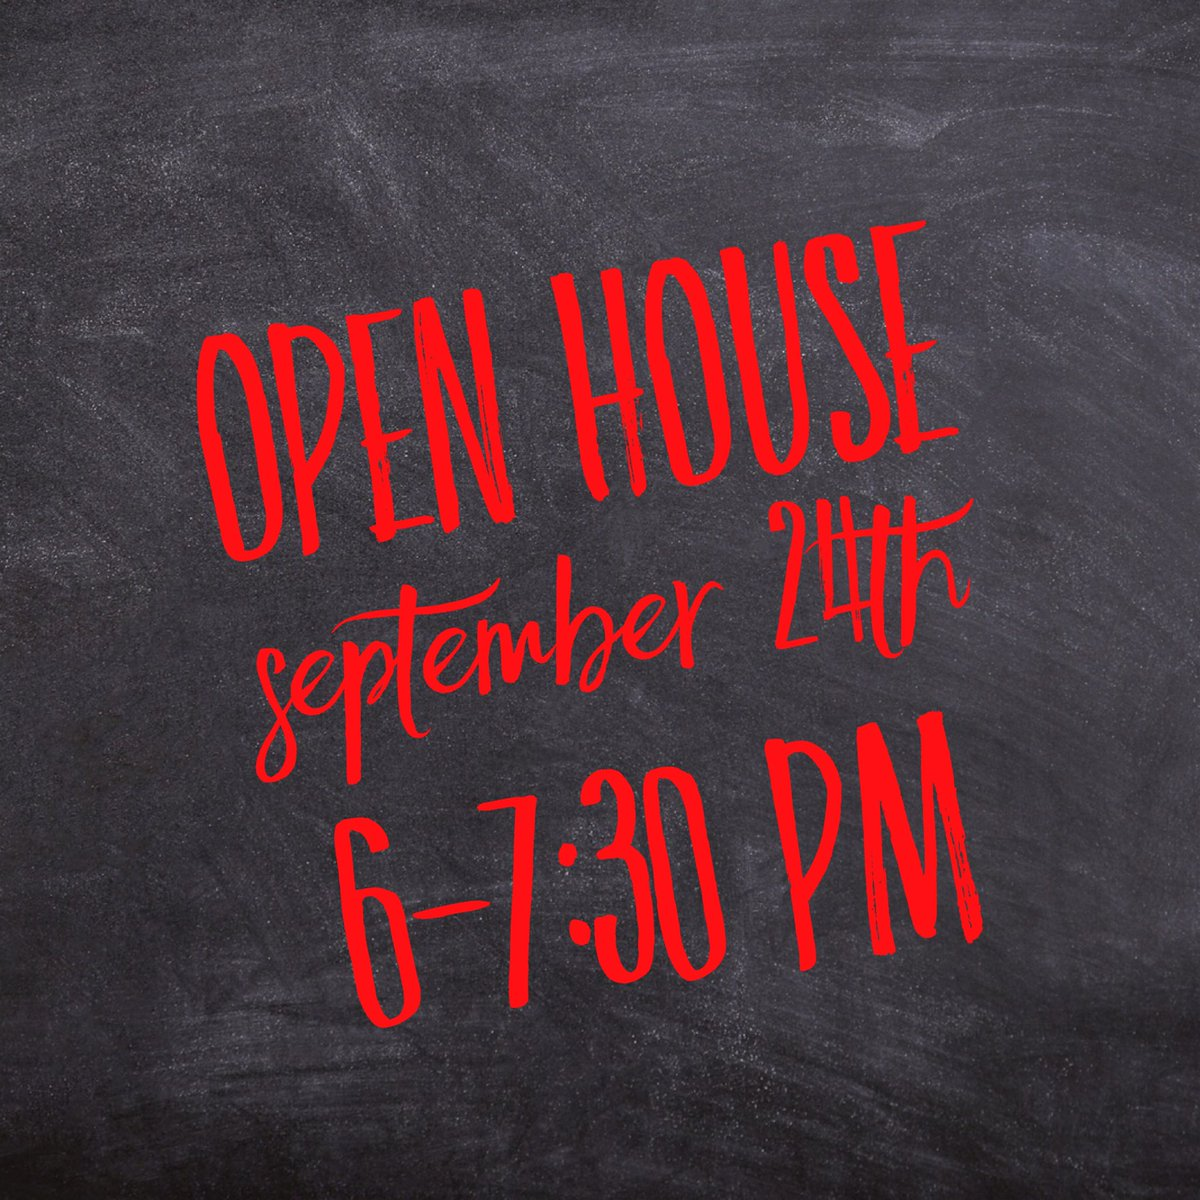 Join us for Open House tomorrow night!